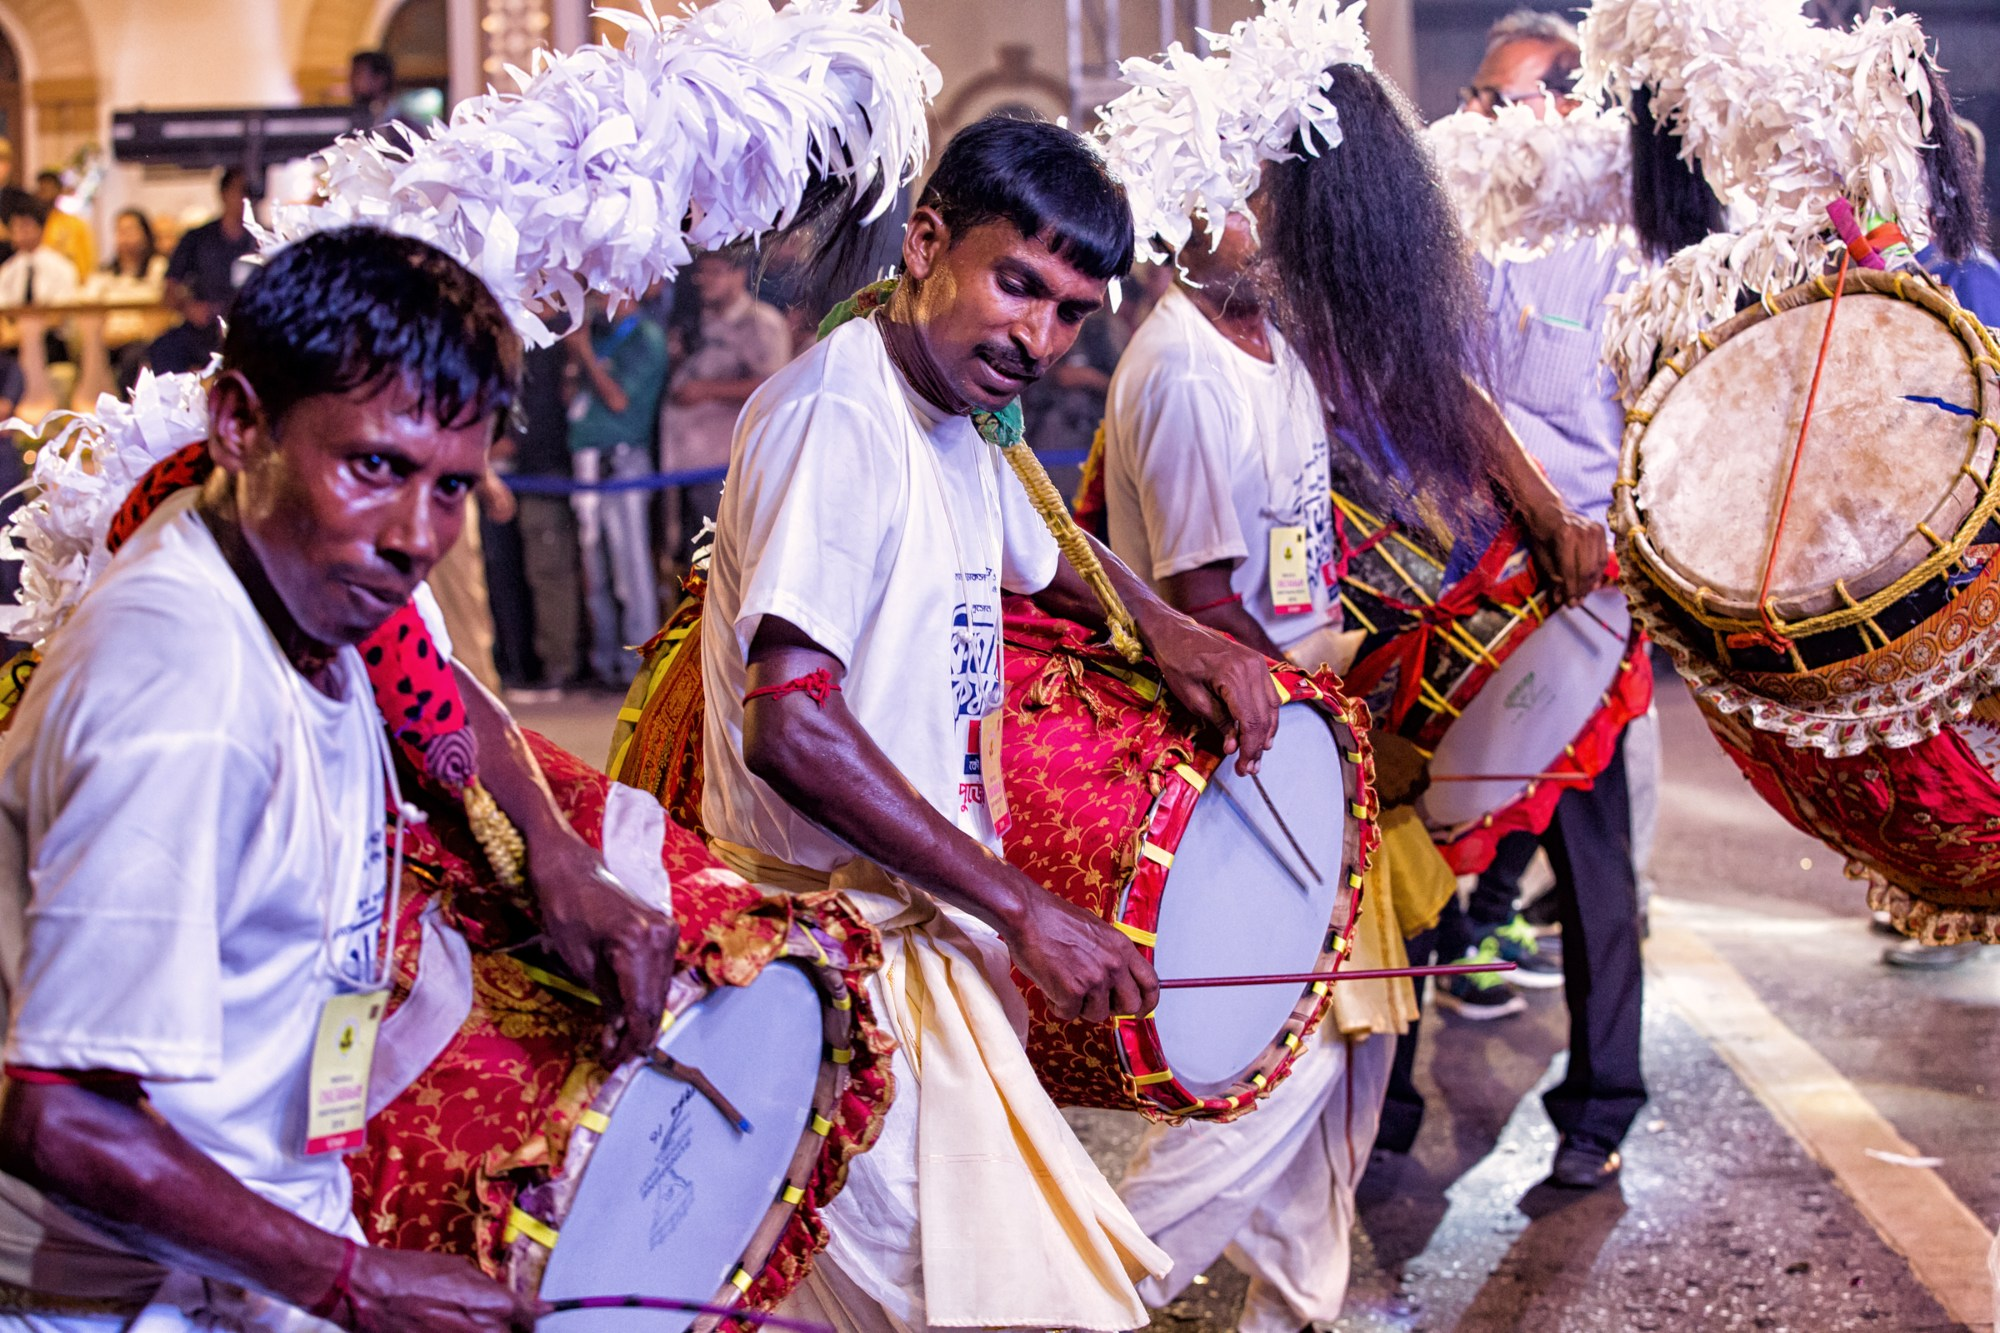 Drummers beat to the sounds of music during a procession